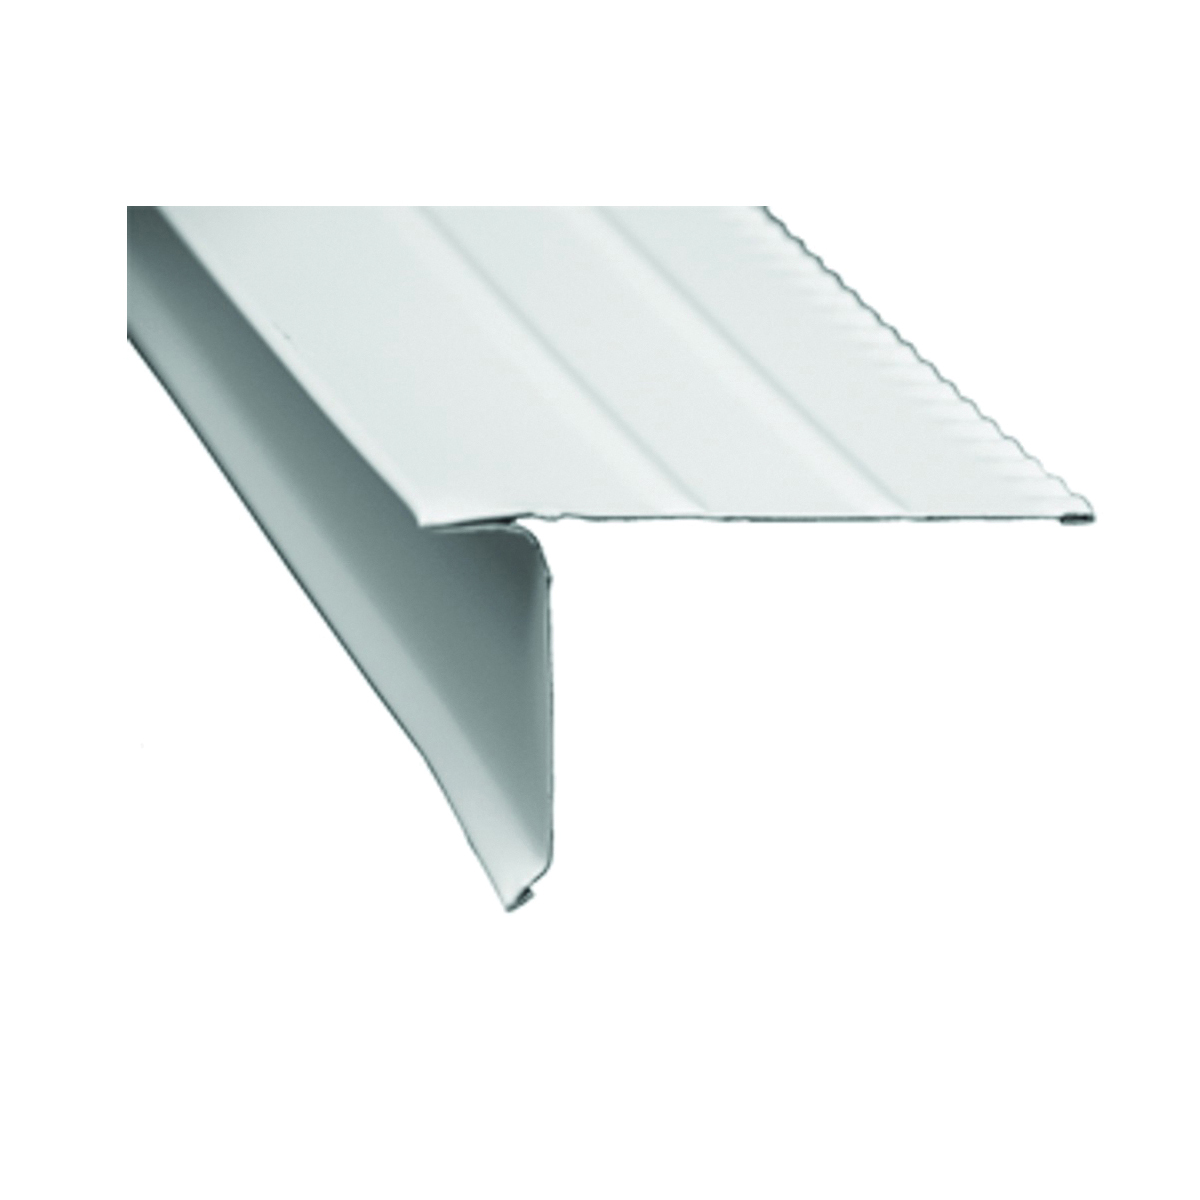 Picture of Amerimax F50WA6 Roof Edge, 10 ft L, Aluminum, White